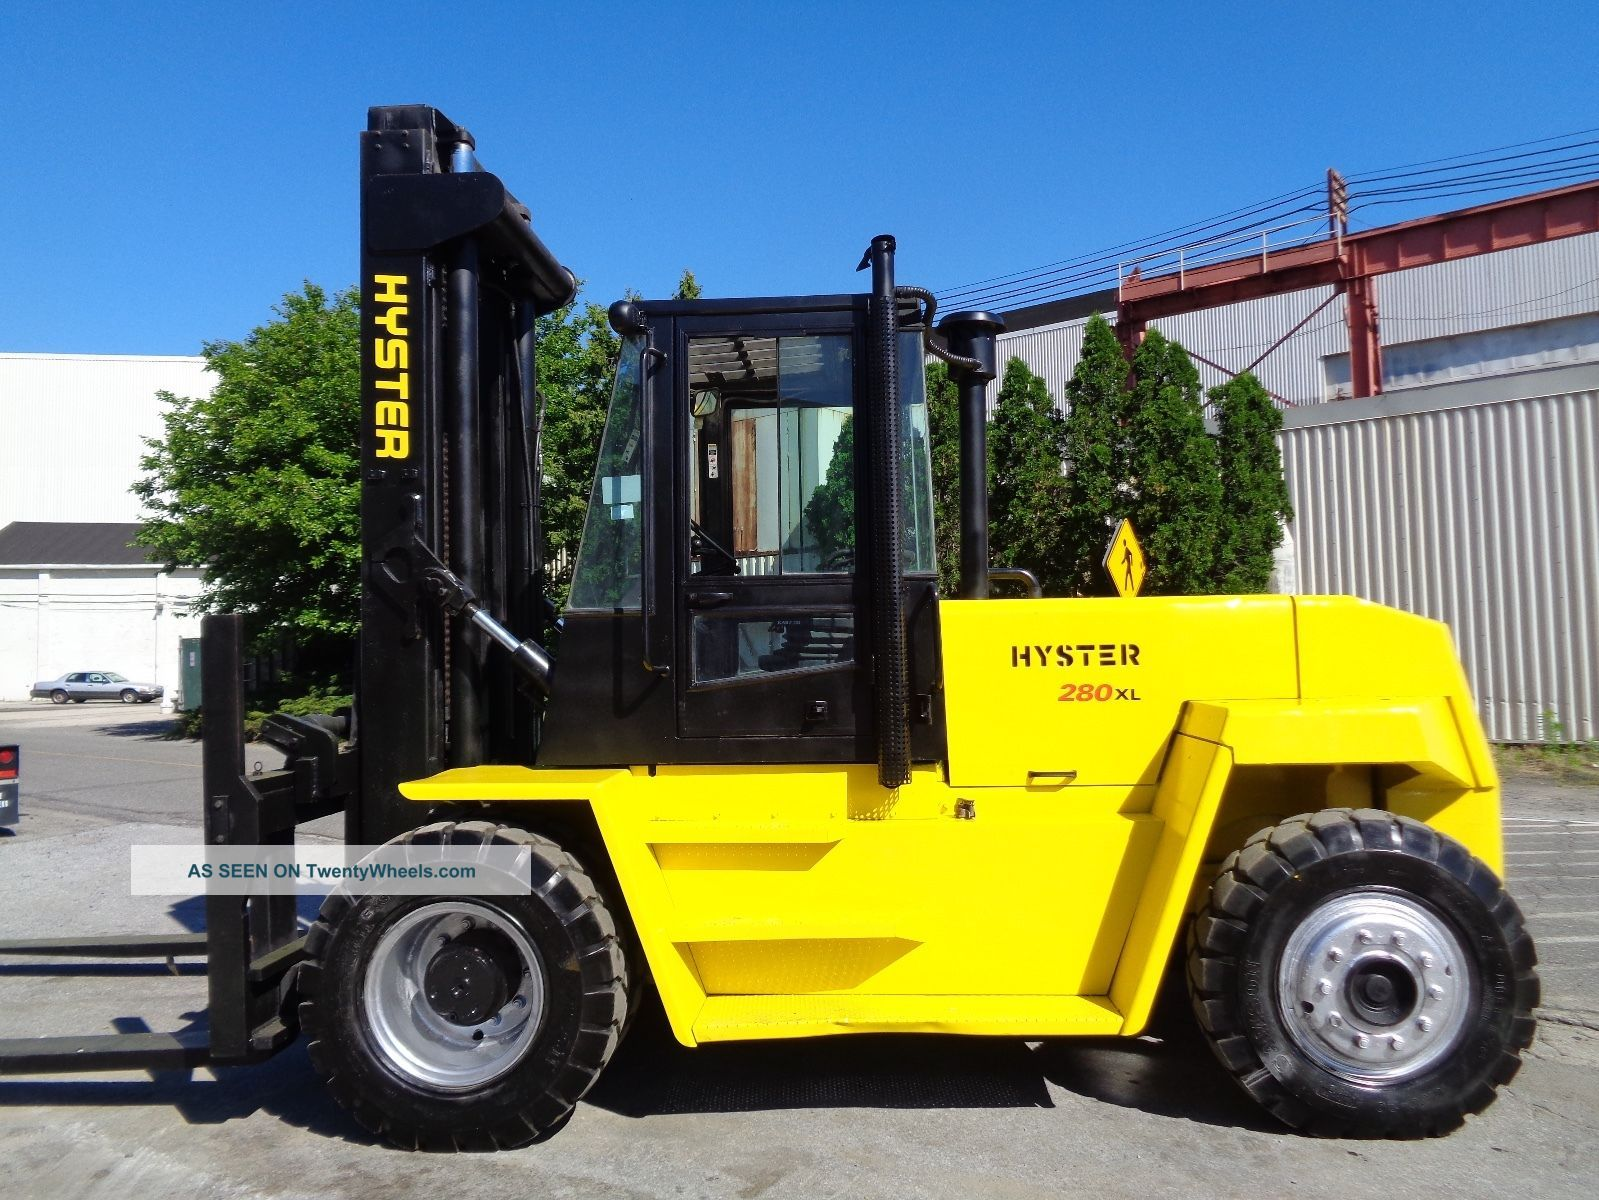 2001 Hyster H280xl 28,  000 Lbs Forklift - Diesel - Side Shift - Cab - Tires Forklifts photo